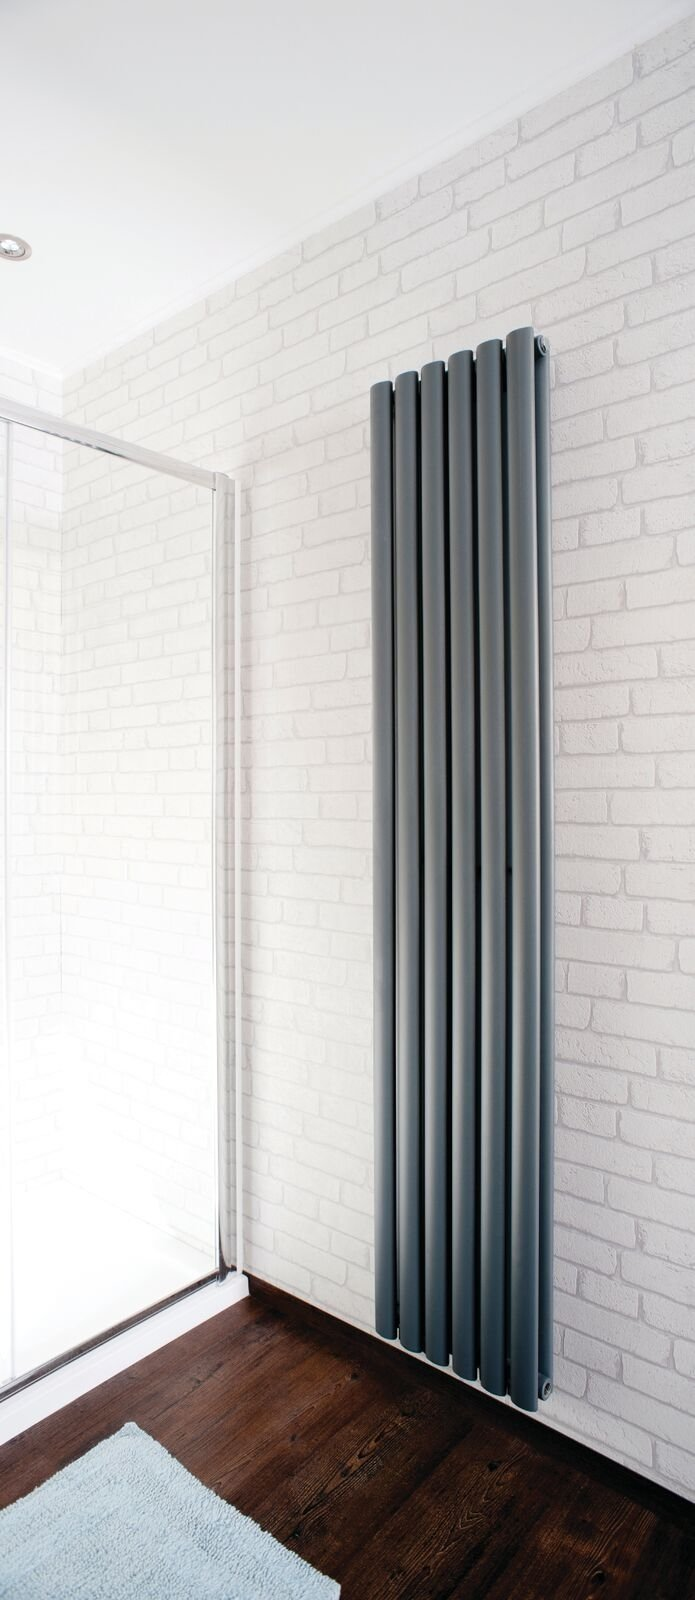 Cassellie Celsius Double Panel Designer Vertical Radiator - 1800mm High x 354mm Wide - Anthracite